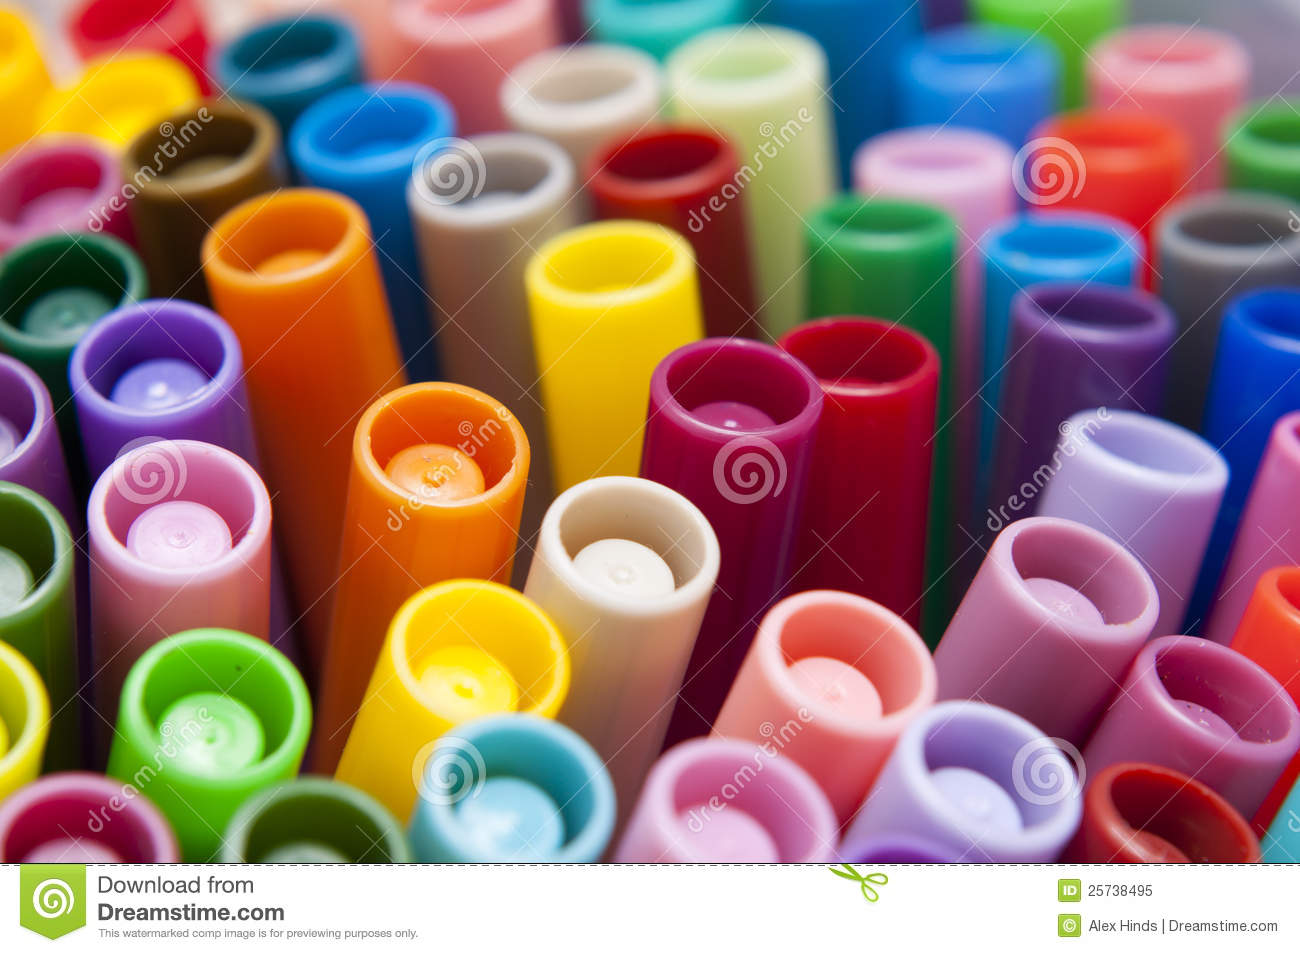 Bright Colorful Pens Stock Image Image Of Pens Primary 25738495